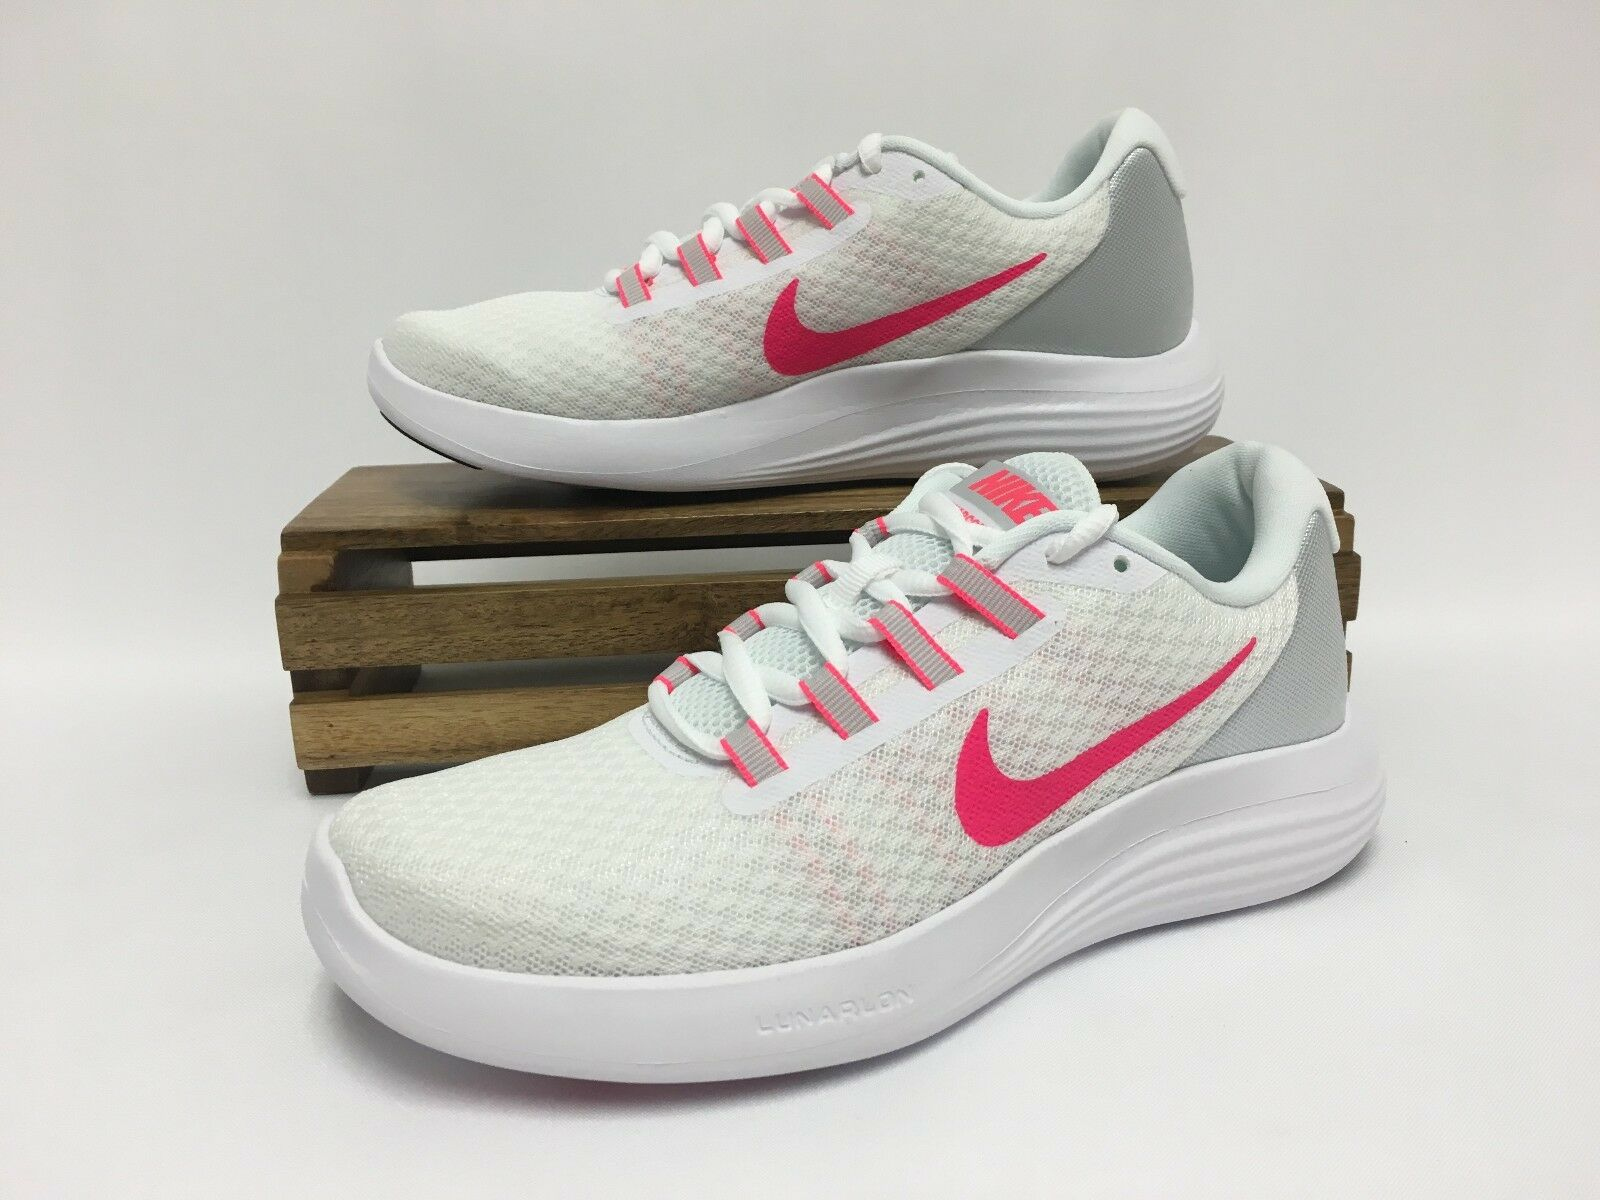 NIKE LUNARCONVERGE RUNNING SHOES WOMENS SIZE 9.5 WHITE PINK 852469-101